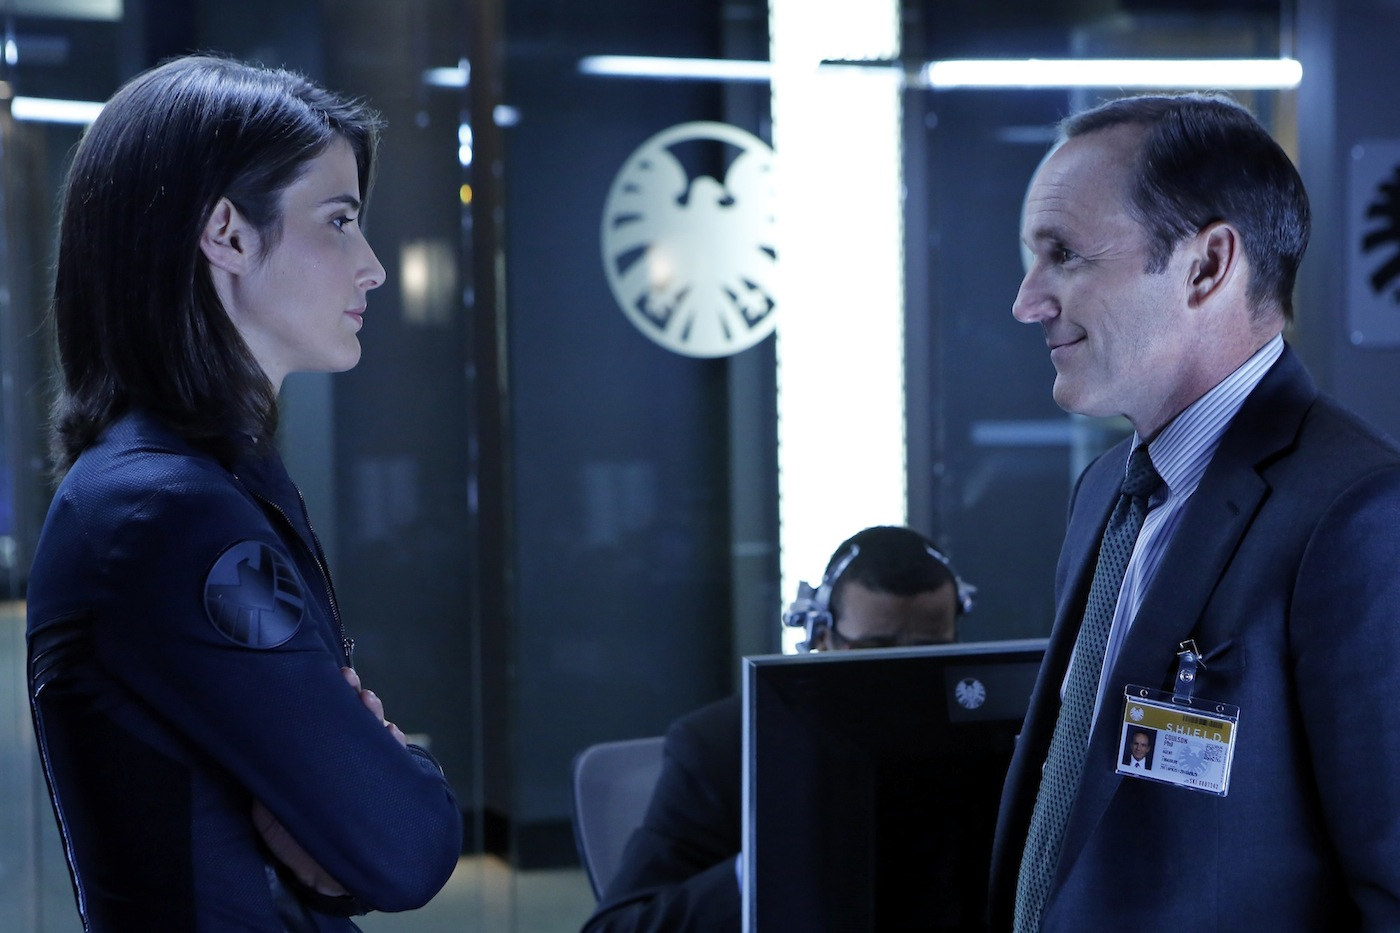 The Binge Read: Marvel's Agents of S.H.I.E.L.D. 2nd Half of Season 1 (Ep. 11-22)